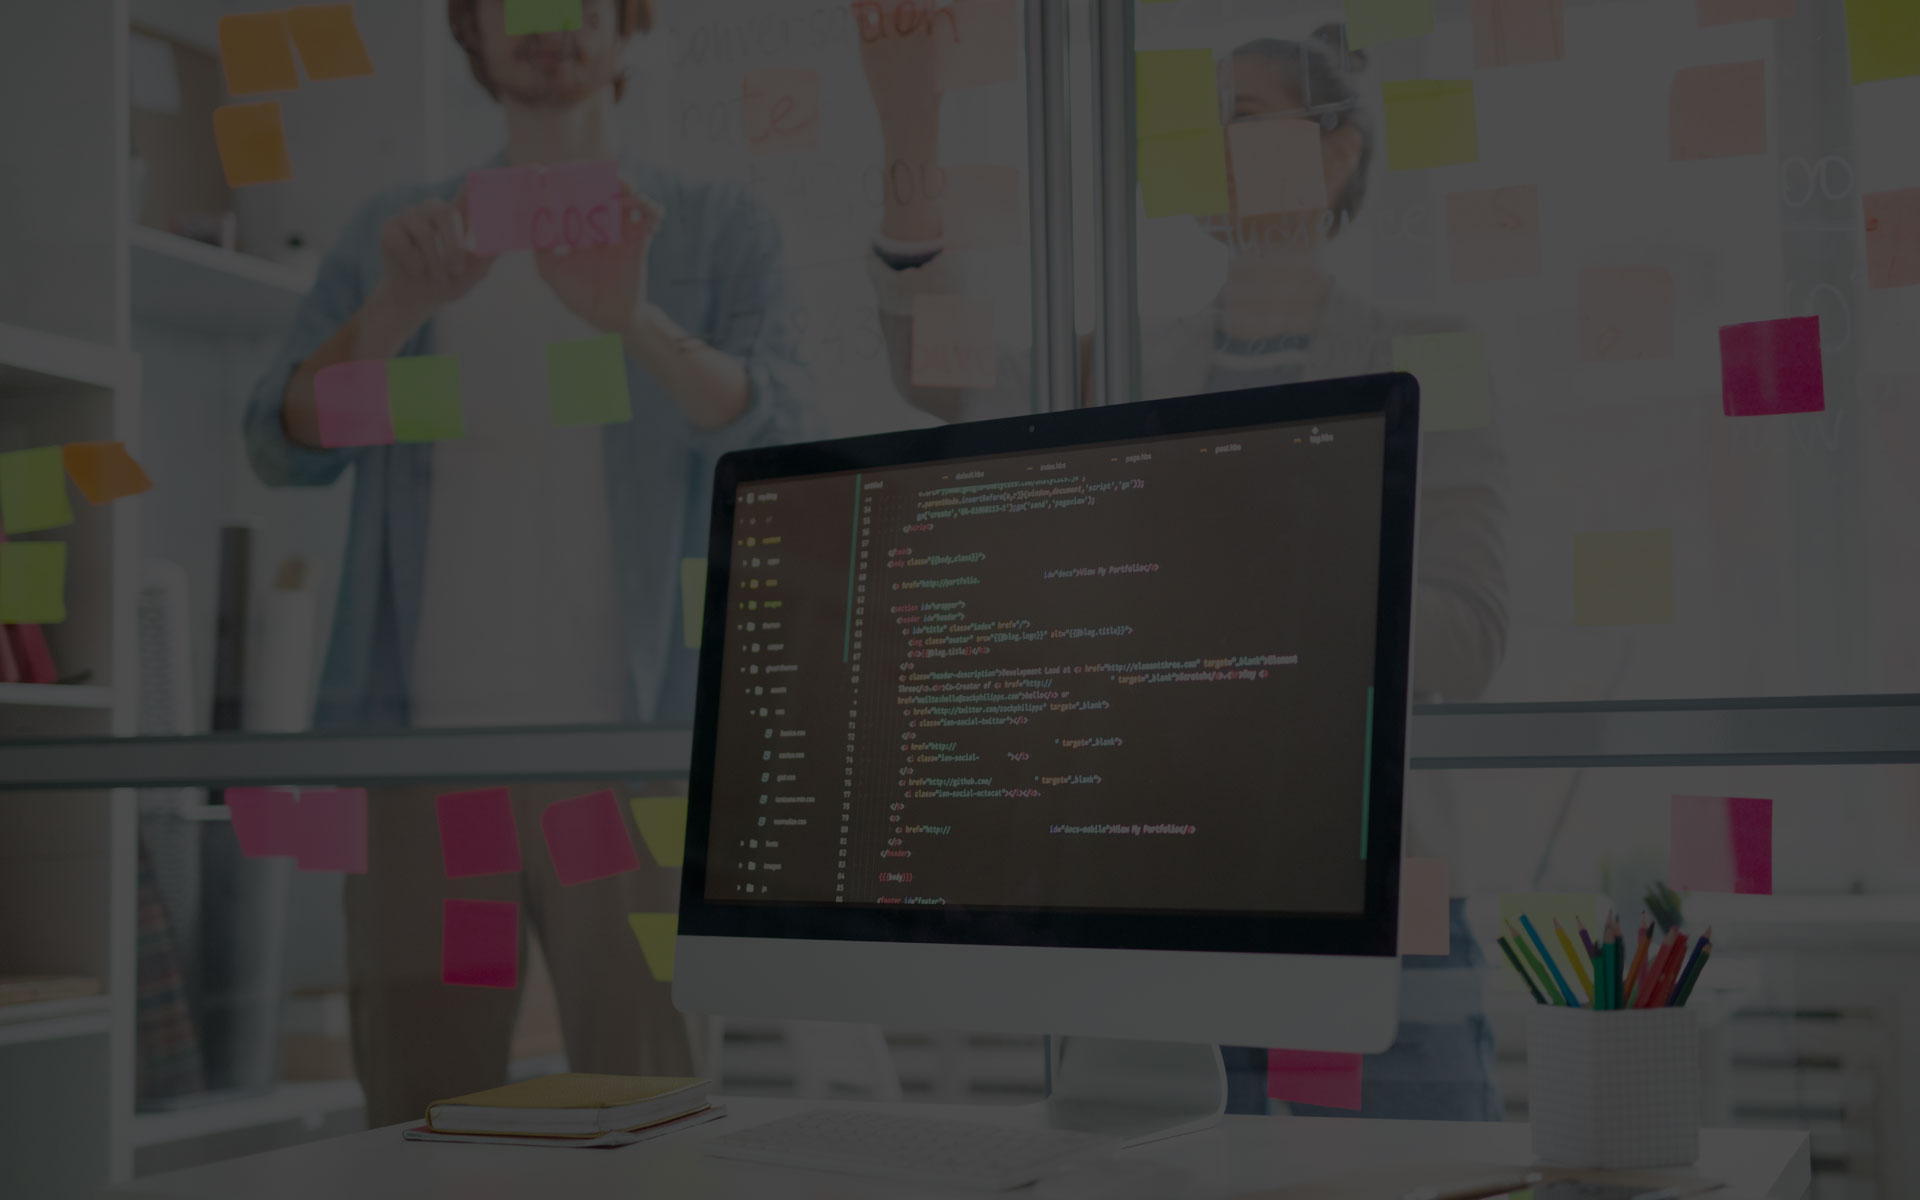 Building applications, creating superior Customer Experiences